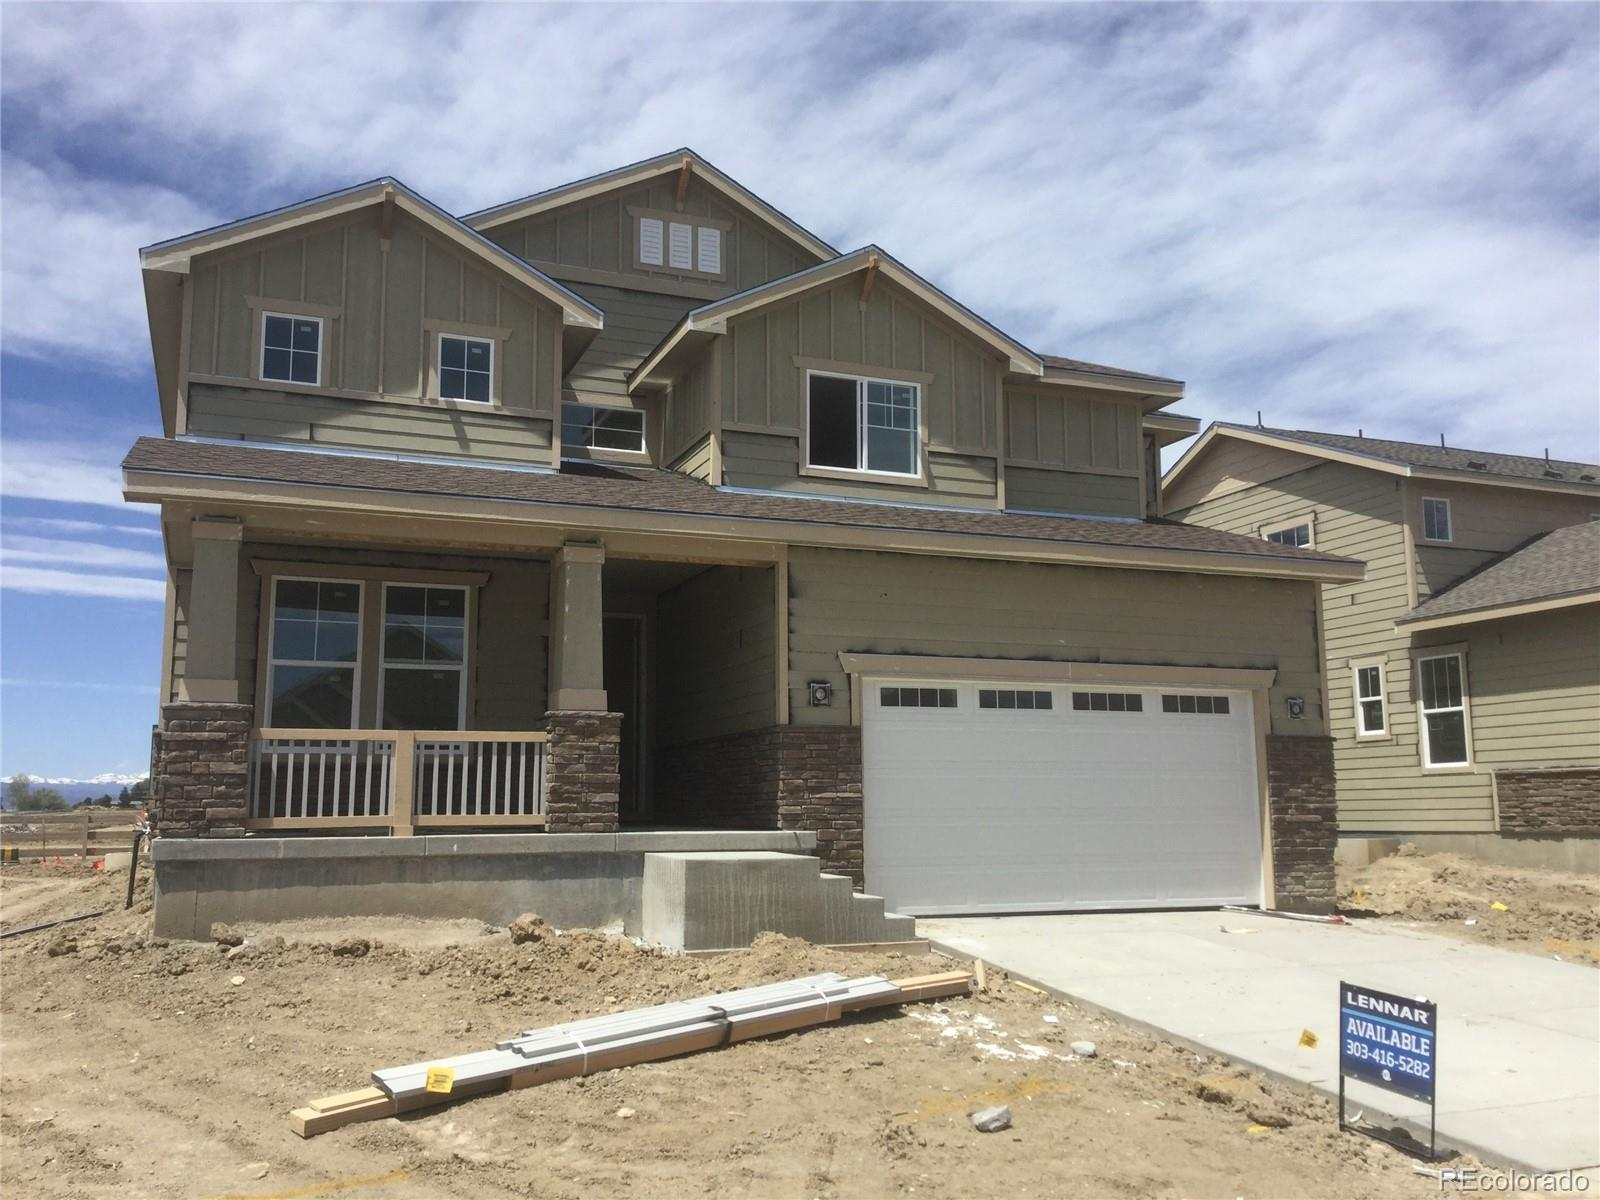 Available July 2020! One of the best homesites in the community. This stunning Ponderosa 2-story home has a Western facing backyard with great mountain views and open space.  Featuring 4 beds, 3 baths, spacious loft, main floor study, kitchen w/breakfast nook, great room,  unfinished basement and 2 car garage. Beautiful upgrades and finished including Slate cabinets, glass block backsplash, White Storm quartz counters, extended Delfino vinyl plank flooring, upgraded carpet and bathroom tile and more.  Palisade Park provides the best of Colorado living. Lennar provides the latest in energy efficiency and state of the art technology with several fabulous floorplans to choose from. Energy efficiency, and technology/connectivity seamlessly blended with luxury to make your new house a home. What some builders consider high-end upgrades, Lennar makes a standard inclusion. You will not be disappointed. This community offers single family homes for every lifestyle. Close to dining, shopping, entertainment and other amenities. Come see what you have been missing. Welcome Home!